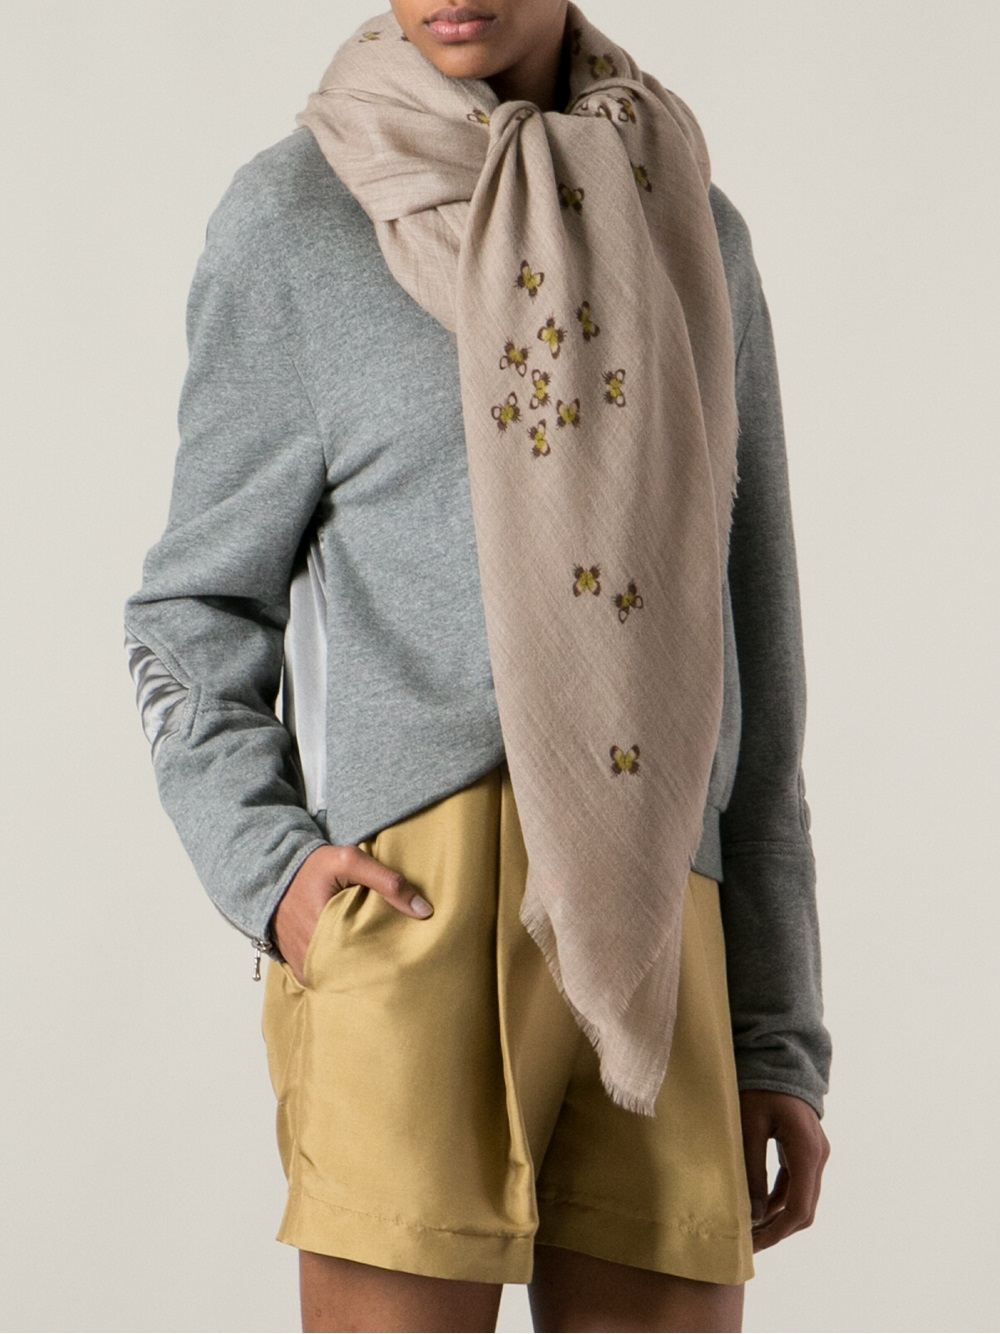 ac4522140c7c Lyst - Bottega Veneta Printed Scarf in Natural